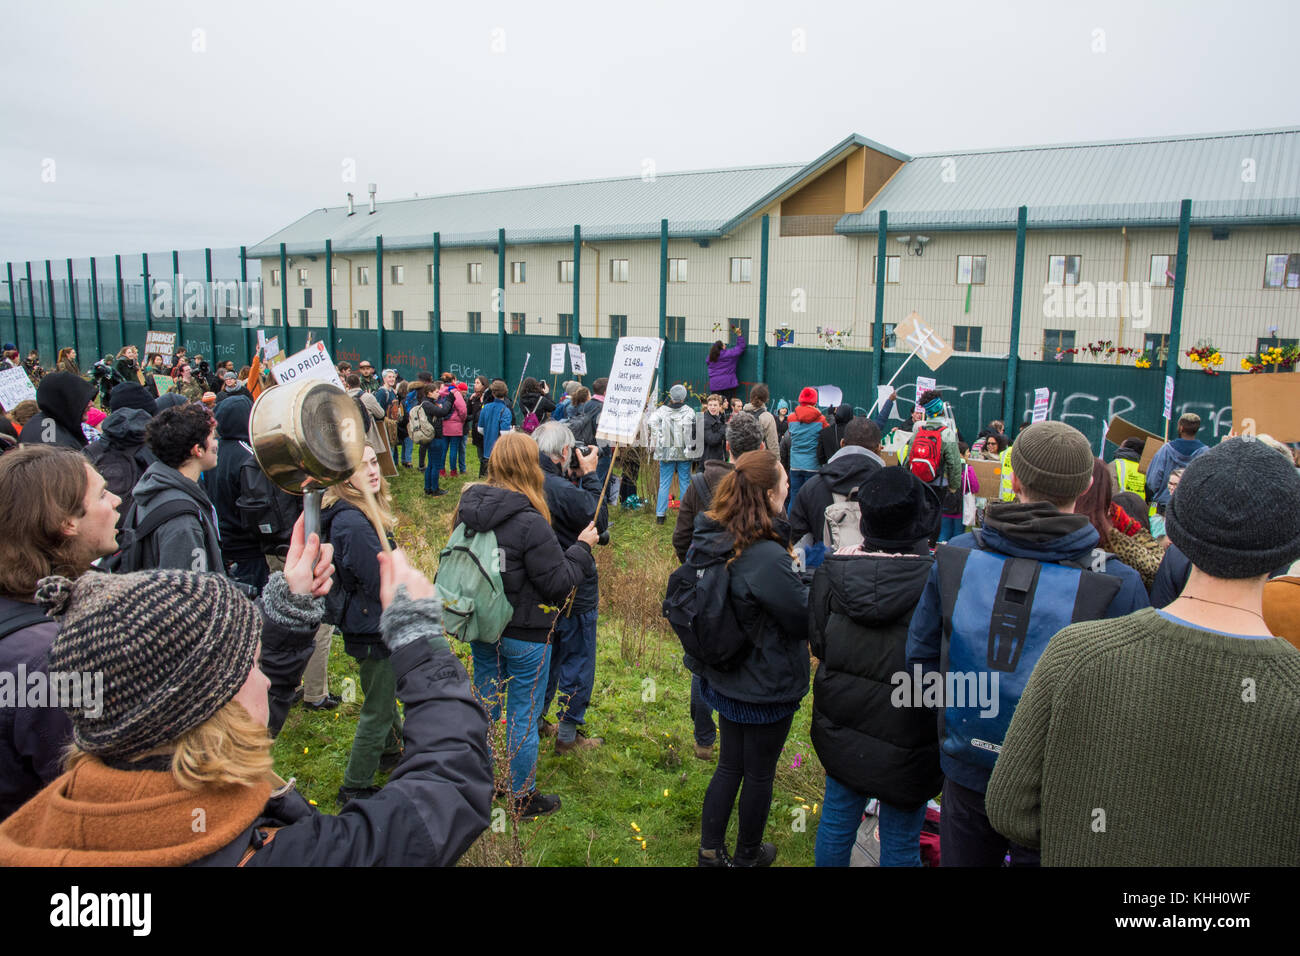 milton-ernest-bedford-uk-saturday-18th-november-2017-around-1000-protesters-KHH0WF.jpg